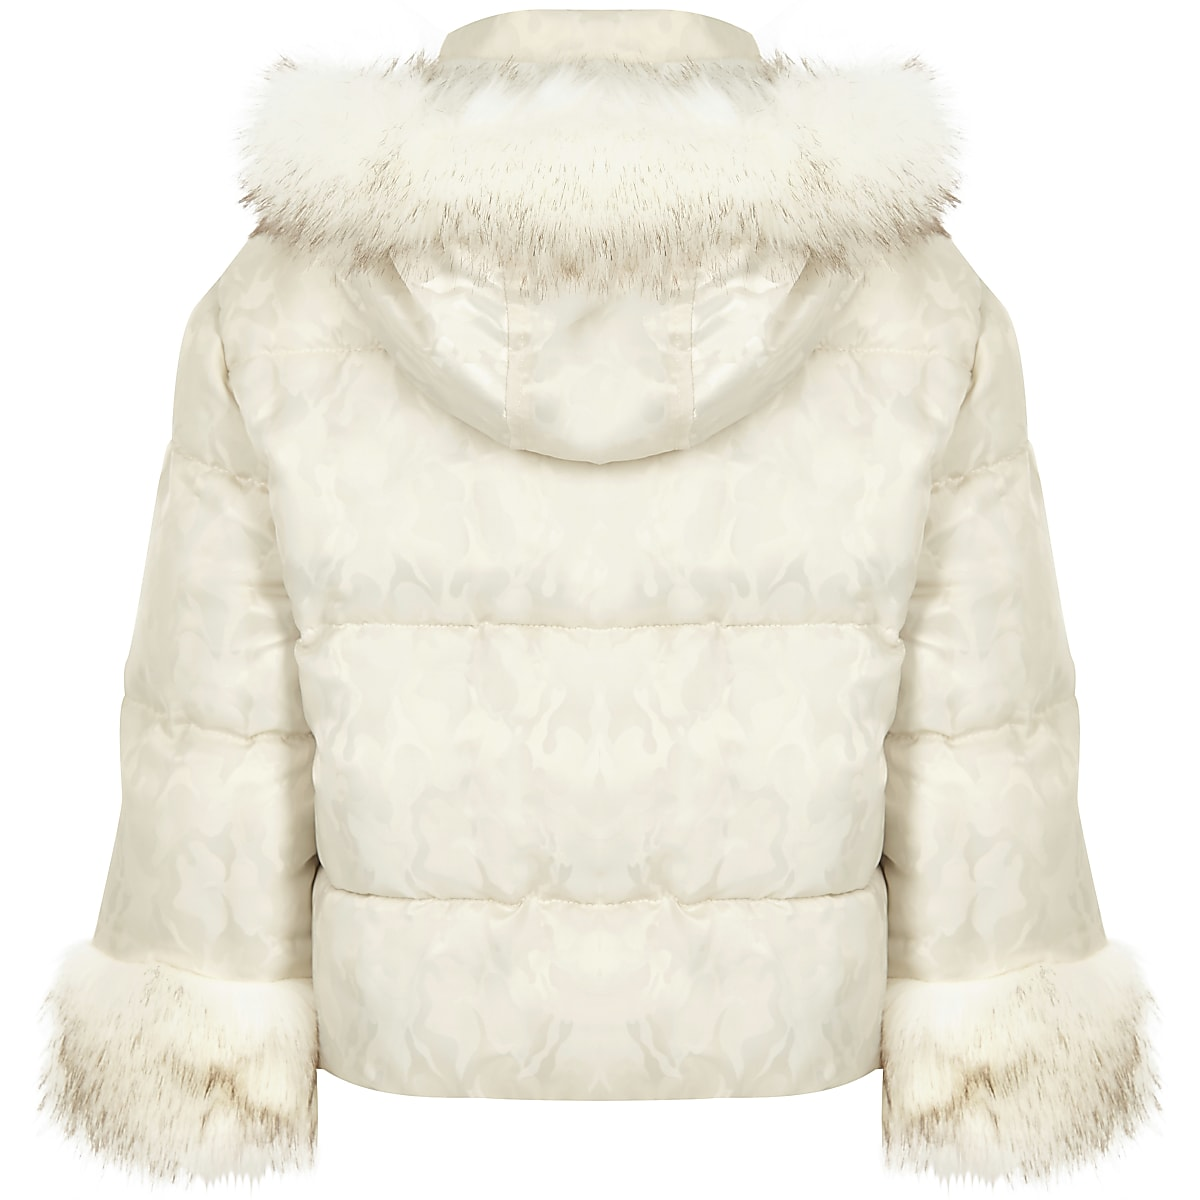 1a262d8dd0ba2 Girls white camo faux fur puffer jacket - Jackets - Coats & Jackets ...